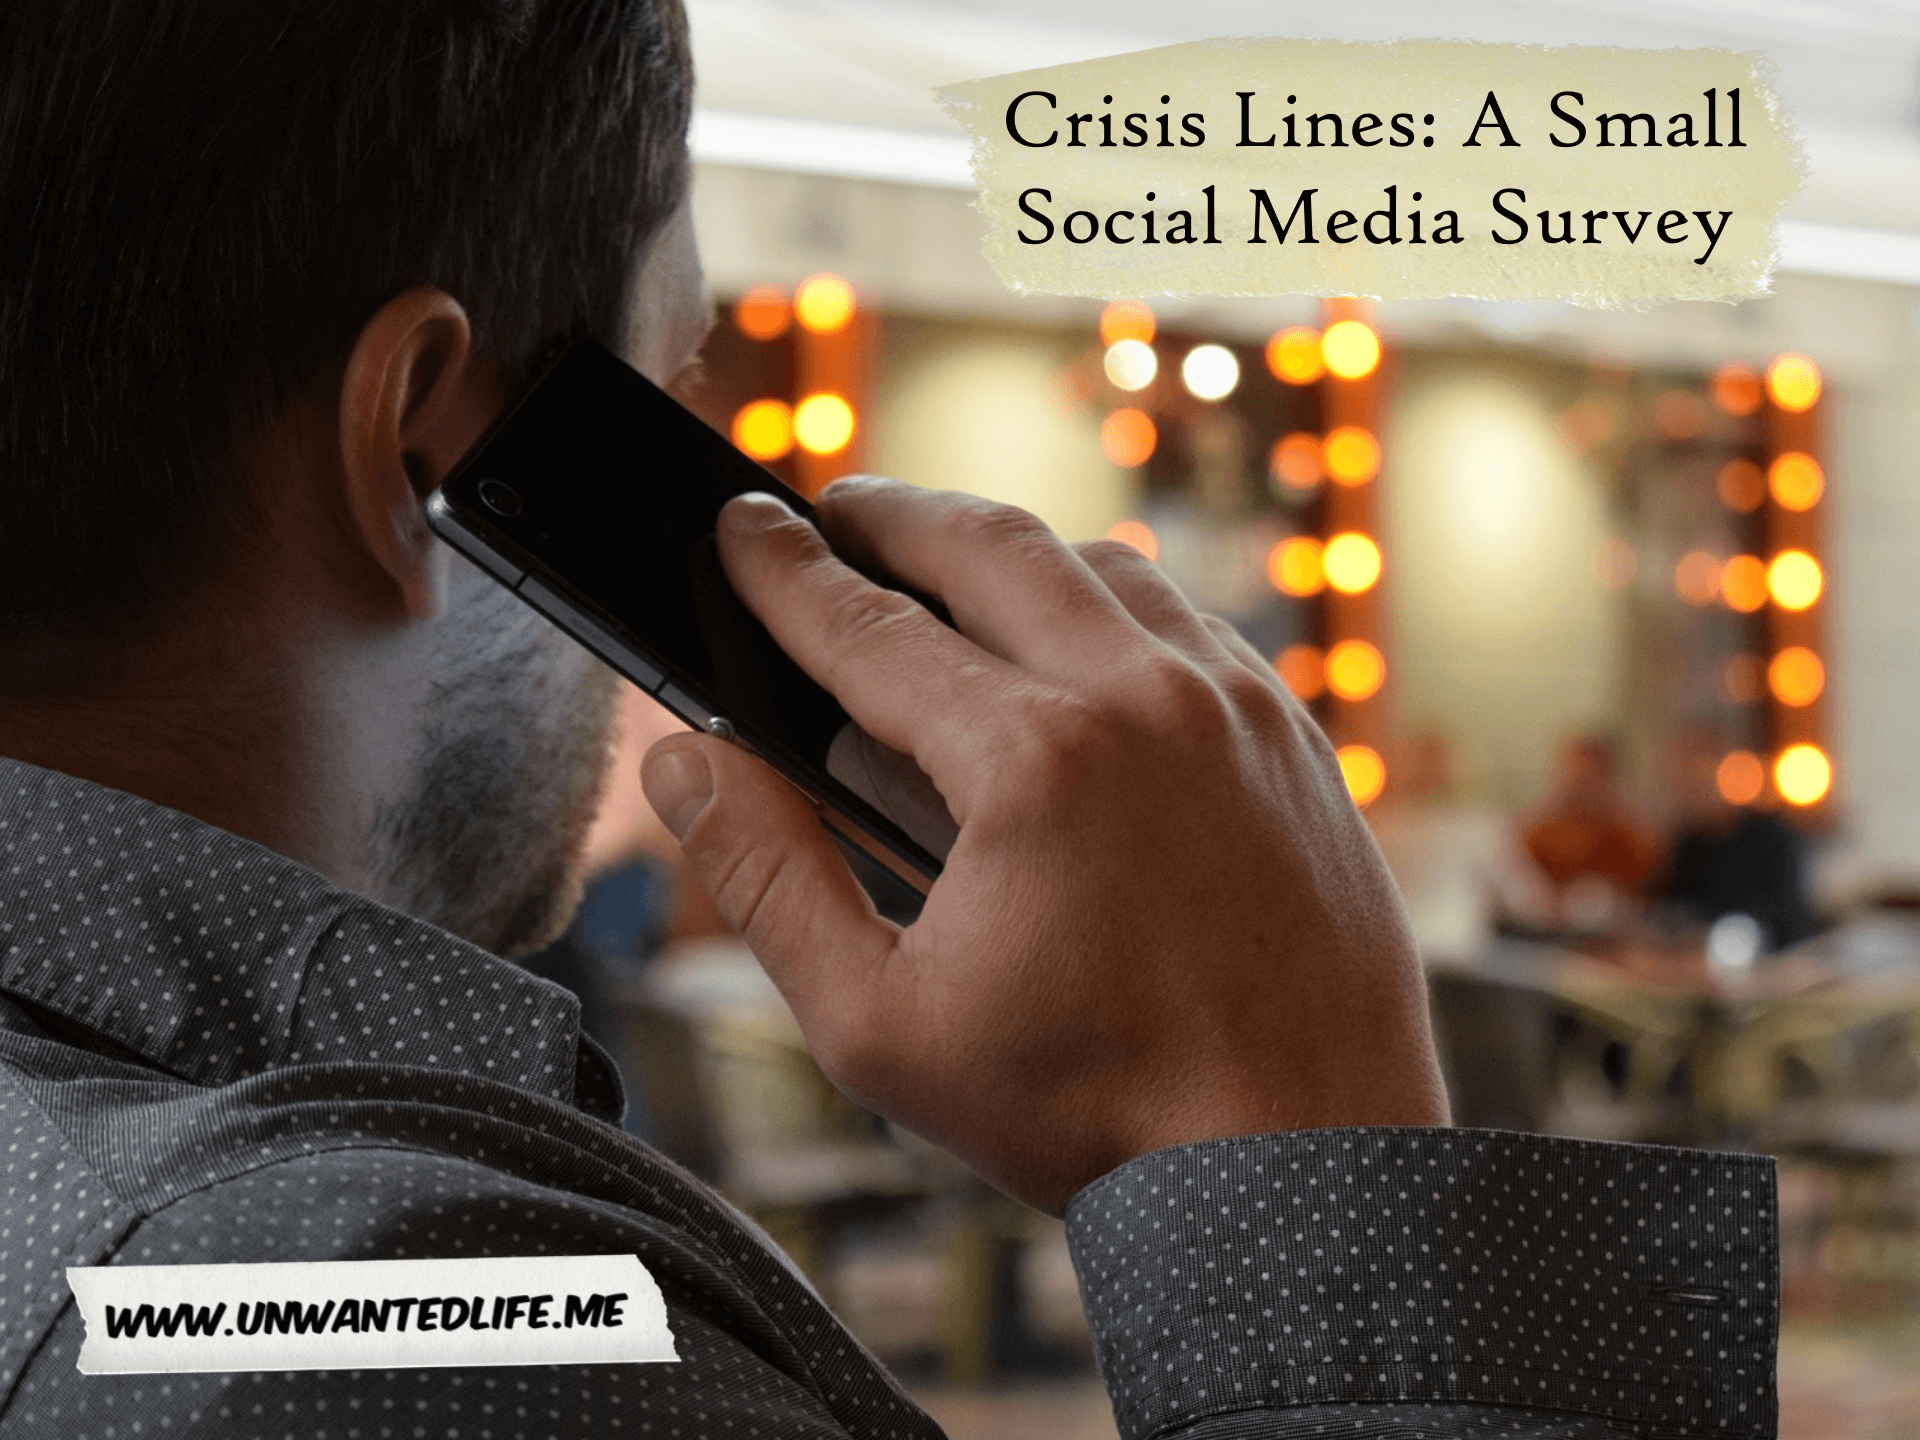 A photo of a white man in a shirt making a call on his smartphone outside with the title of the article - Crisis Lines: A Small Social Media Survey